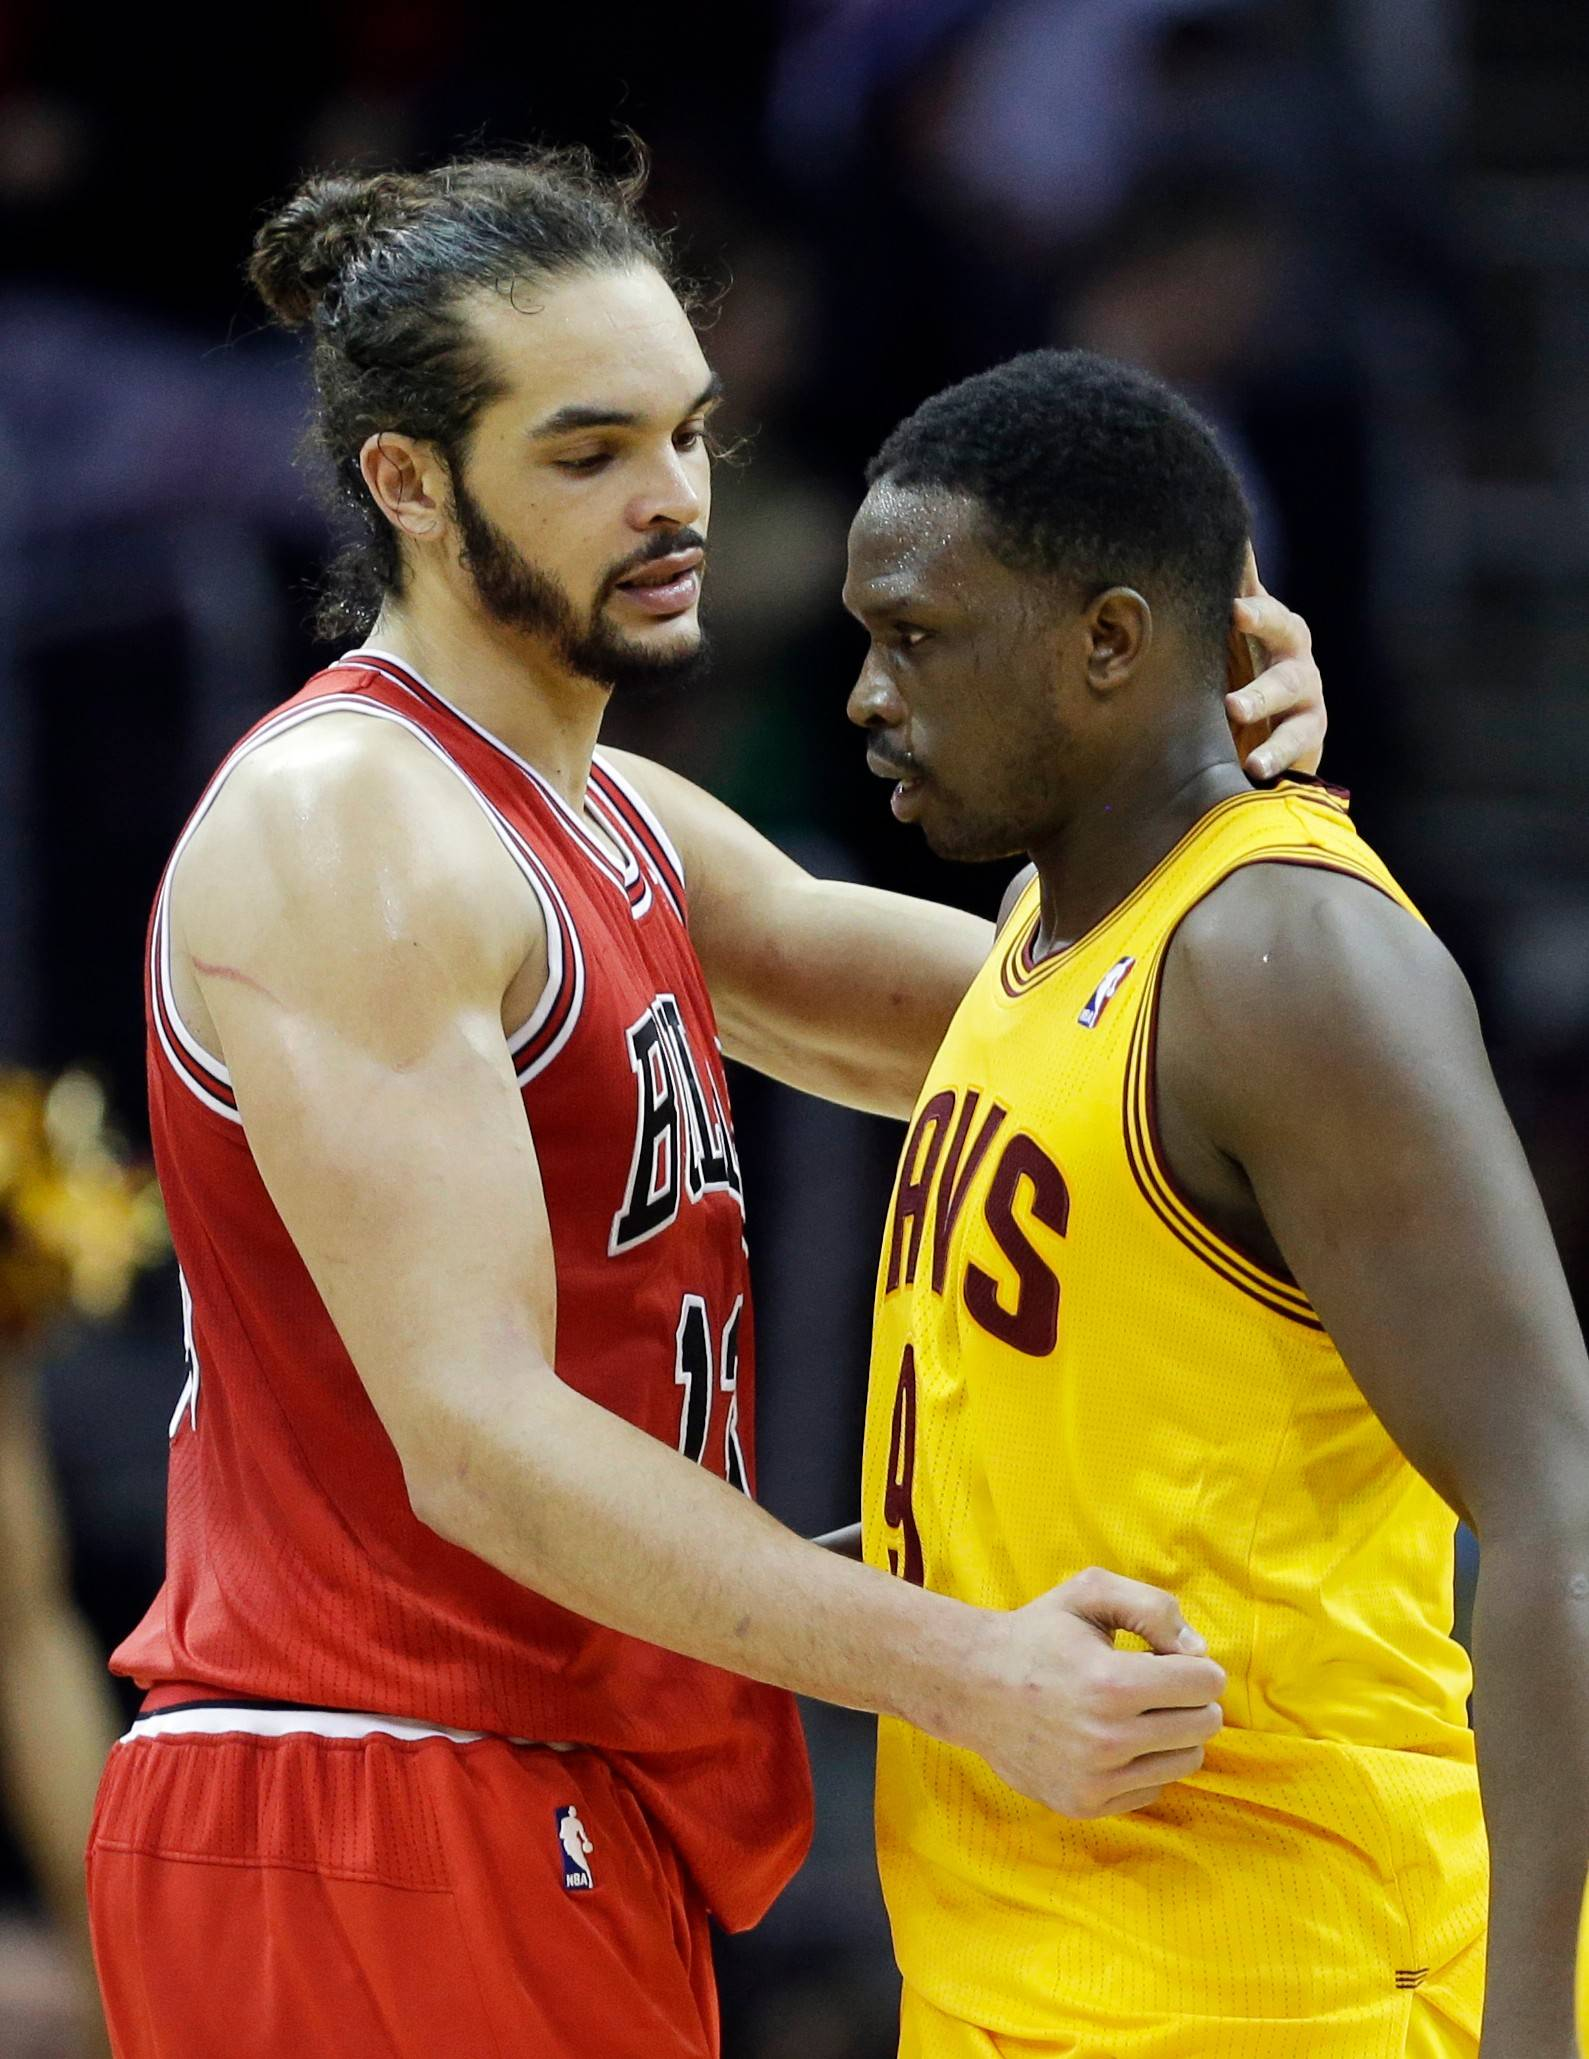 Both Chicago Bulls center Joakim Noah and Cleveland forward Luol Deng were nominated for a community service award, which was awarded Tuesday to Deng.